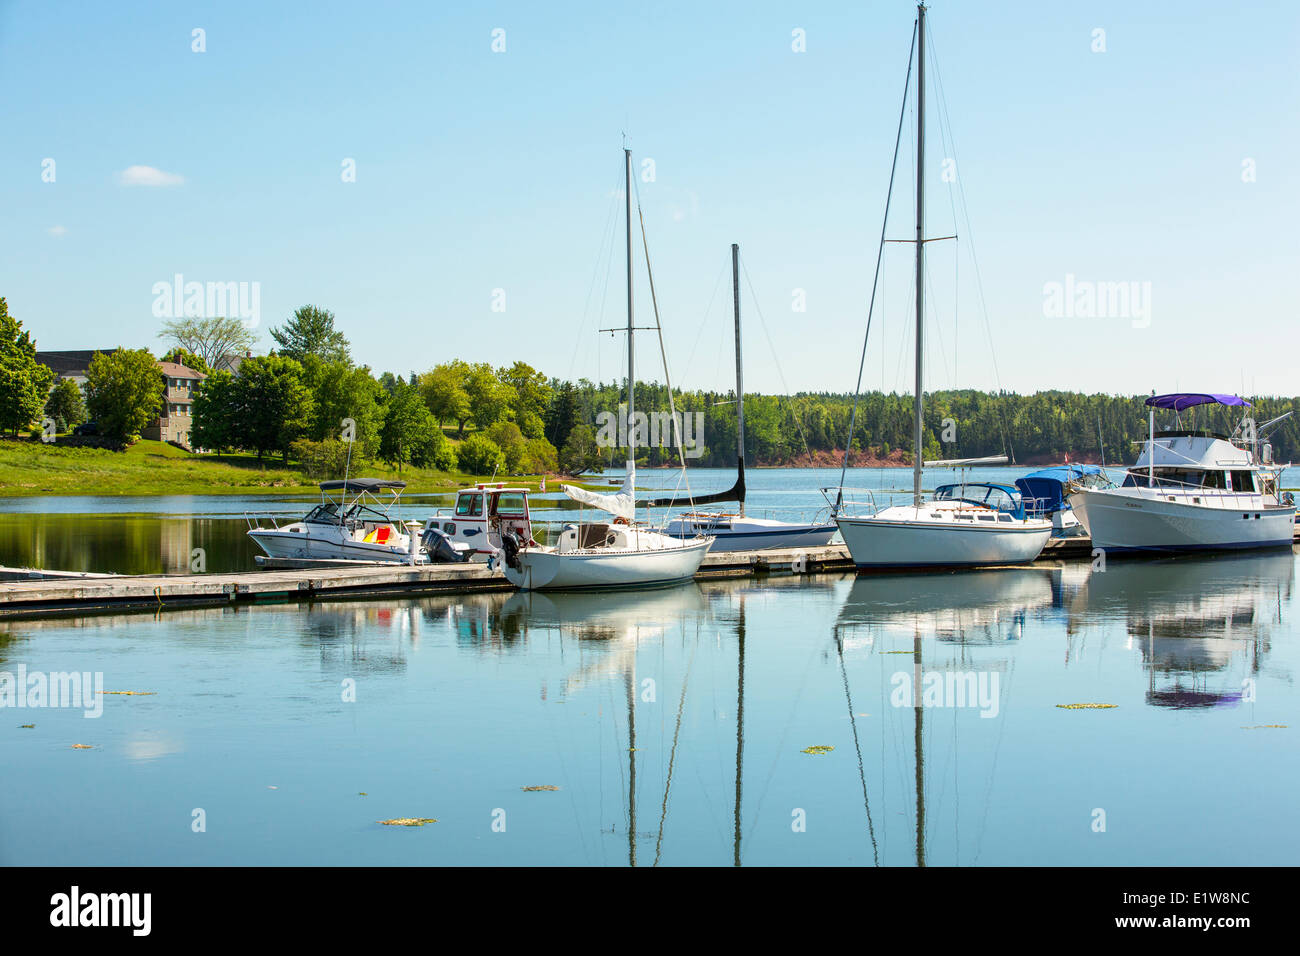 Saliboats docked at Georgetown Marina, Georgetown, Prince Edward Island, Canada - Stock Image